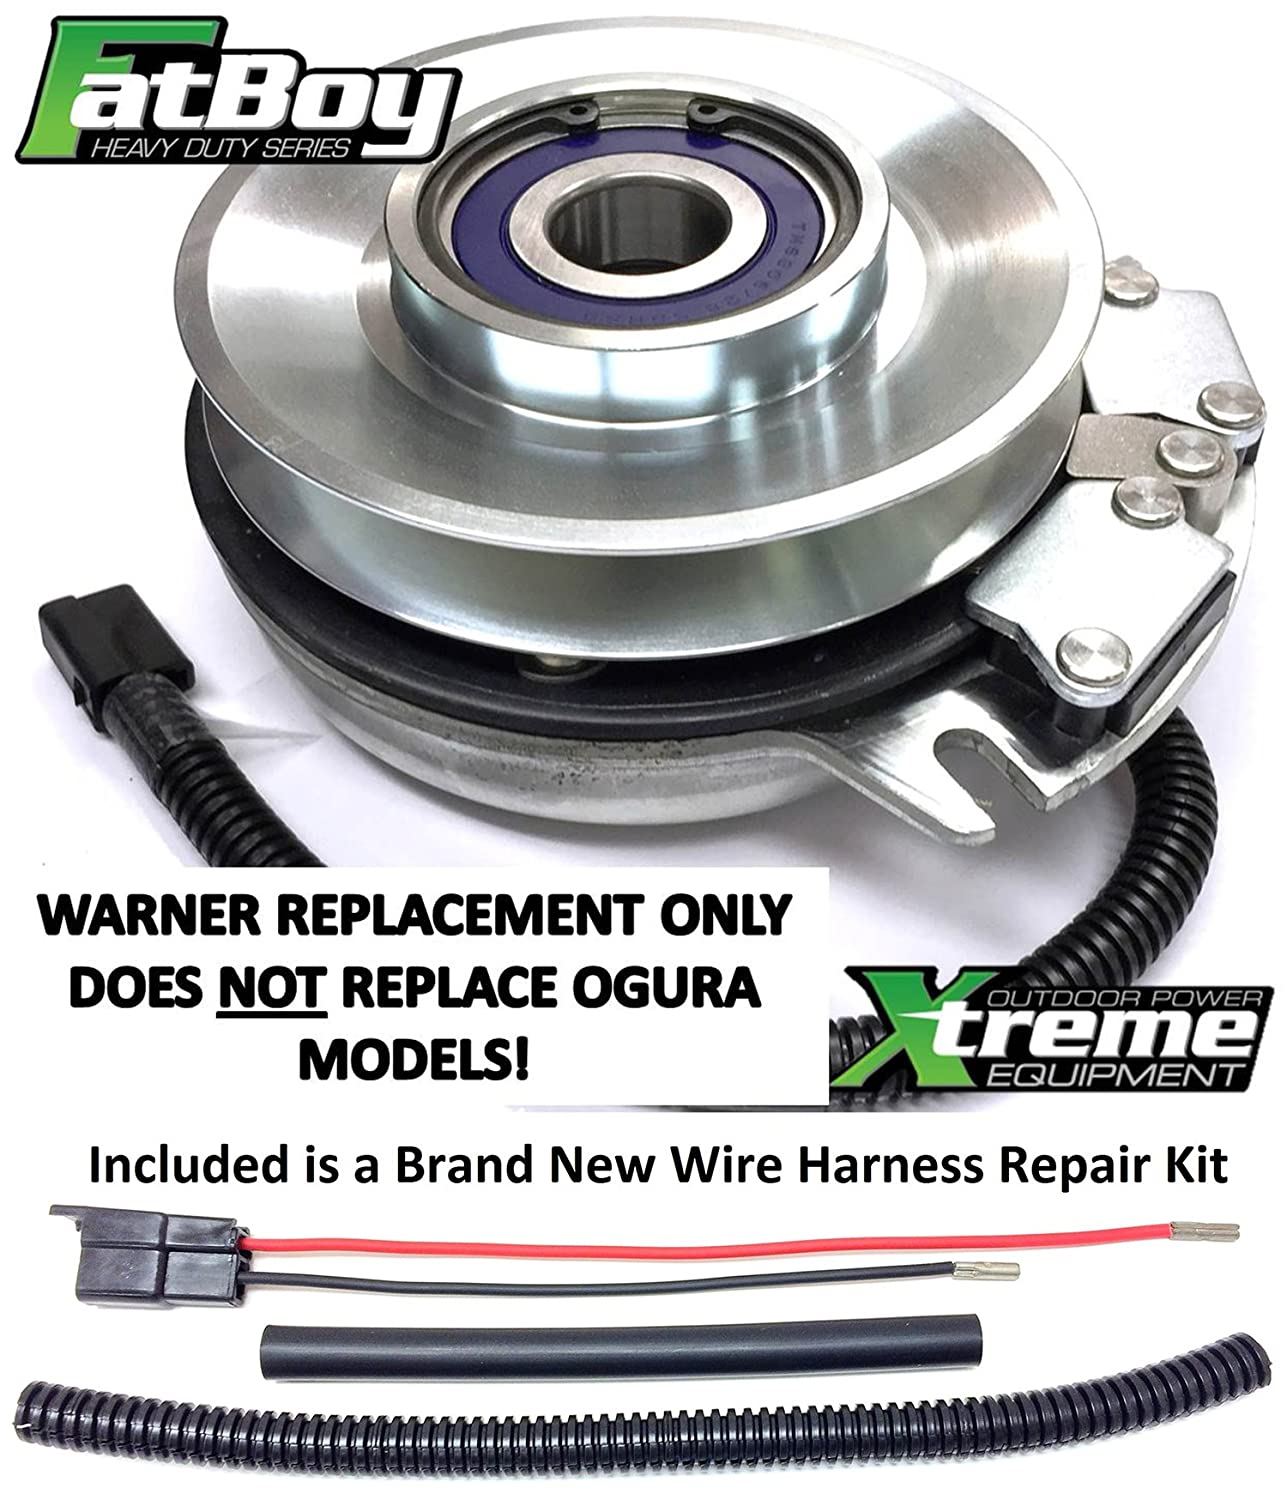 Xtreme Outdoor Power Equipment Bundle 2 Items Pto Fatboy Wiring Harness Replaces Scag 461395 Clutch High Torque W Wire Repair Kit Garden